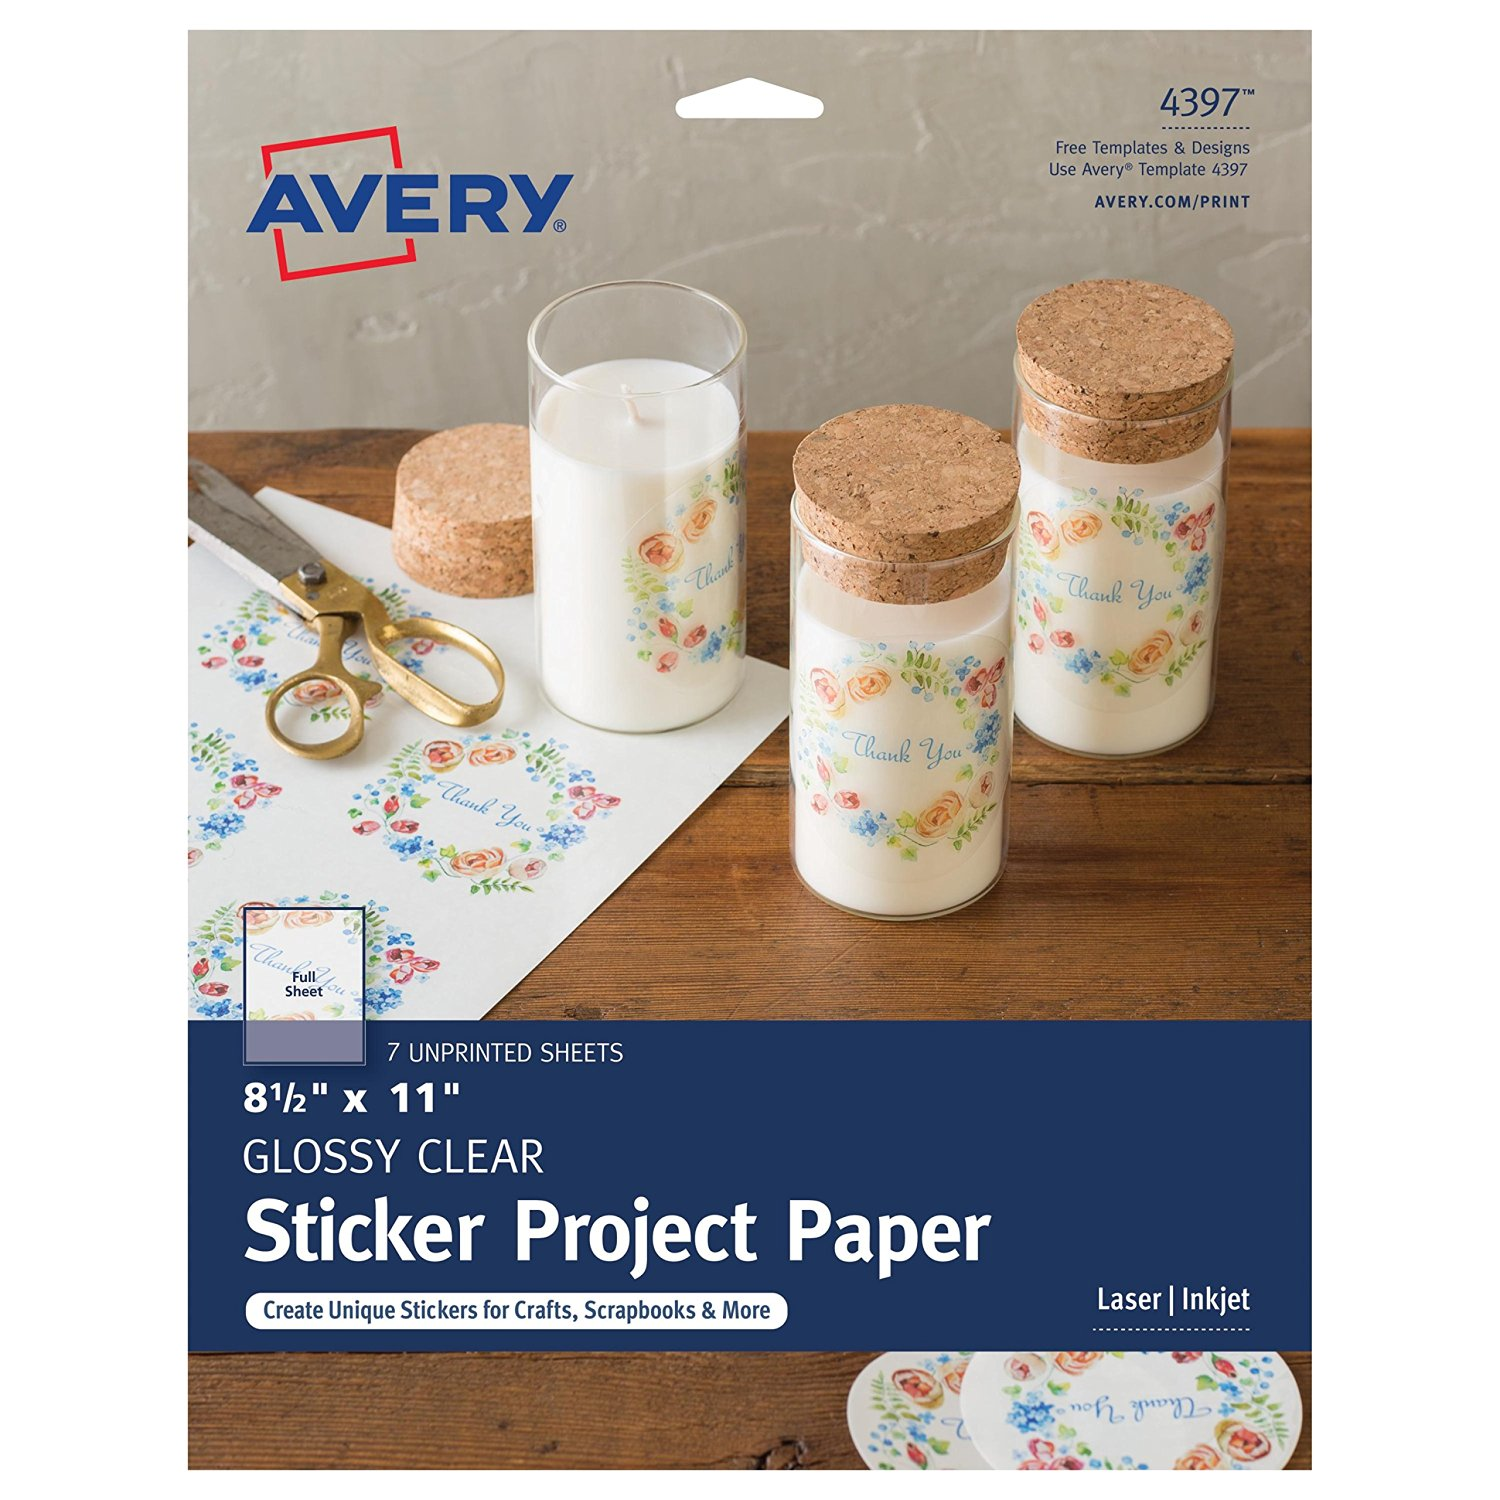 Cheap Avery Sticker Templates Find Avery Sticker Templates Deals On